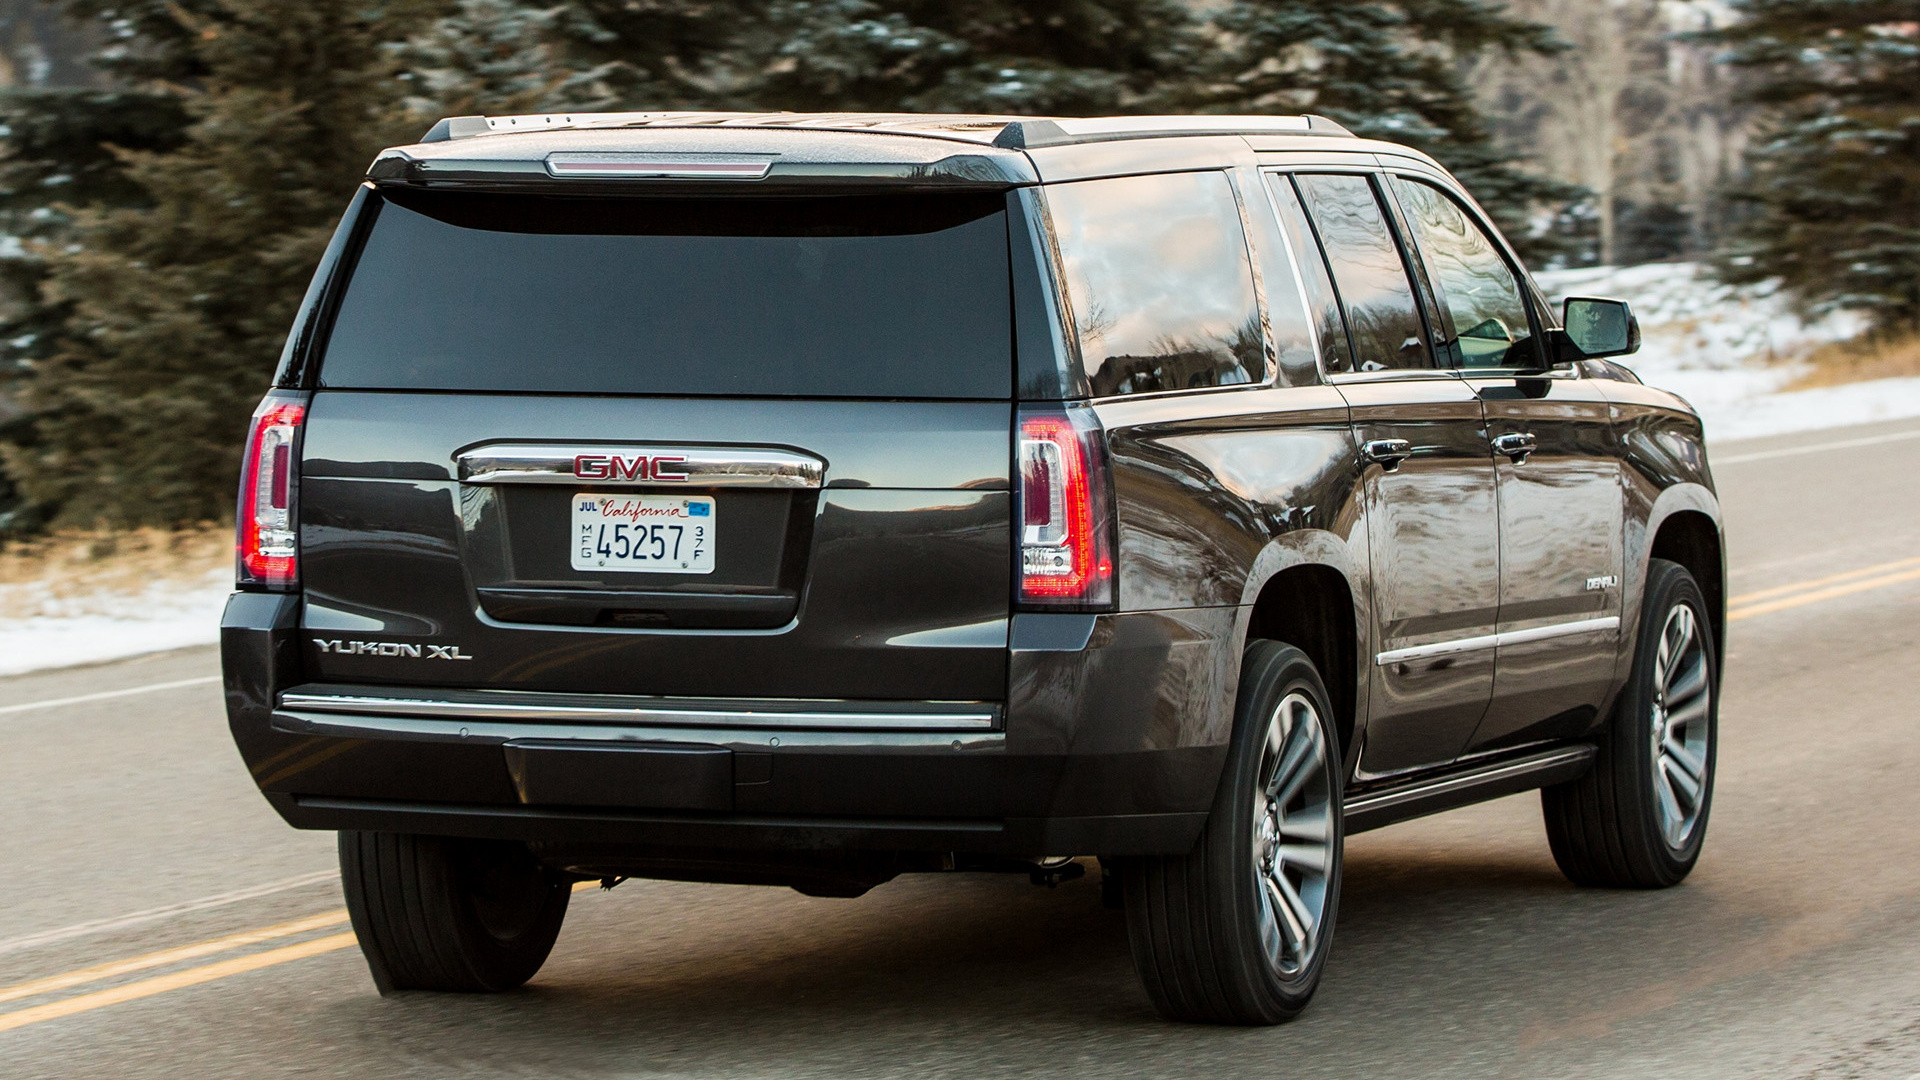 gmc yukon xl denali 2018 wallpapers and hd images car. Black Bedroom Furniture Sets. Home Design Ideas